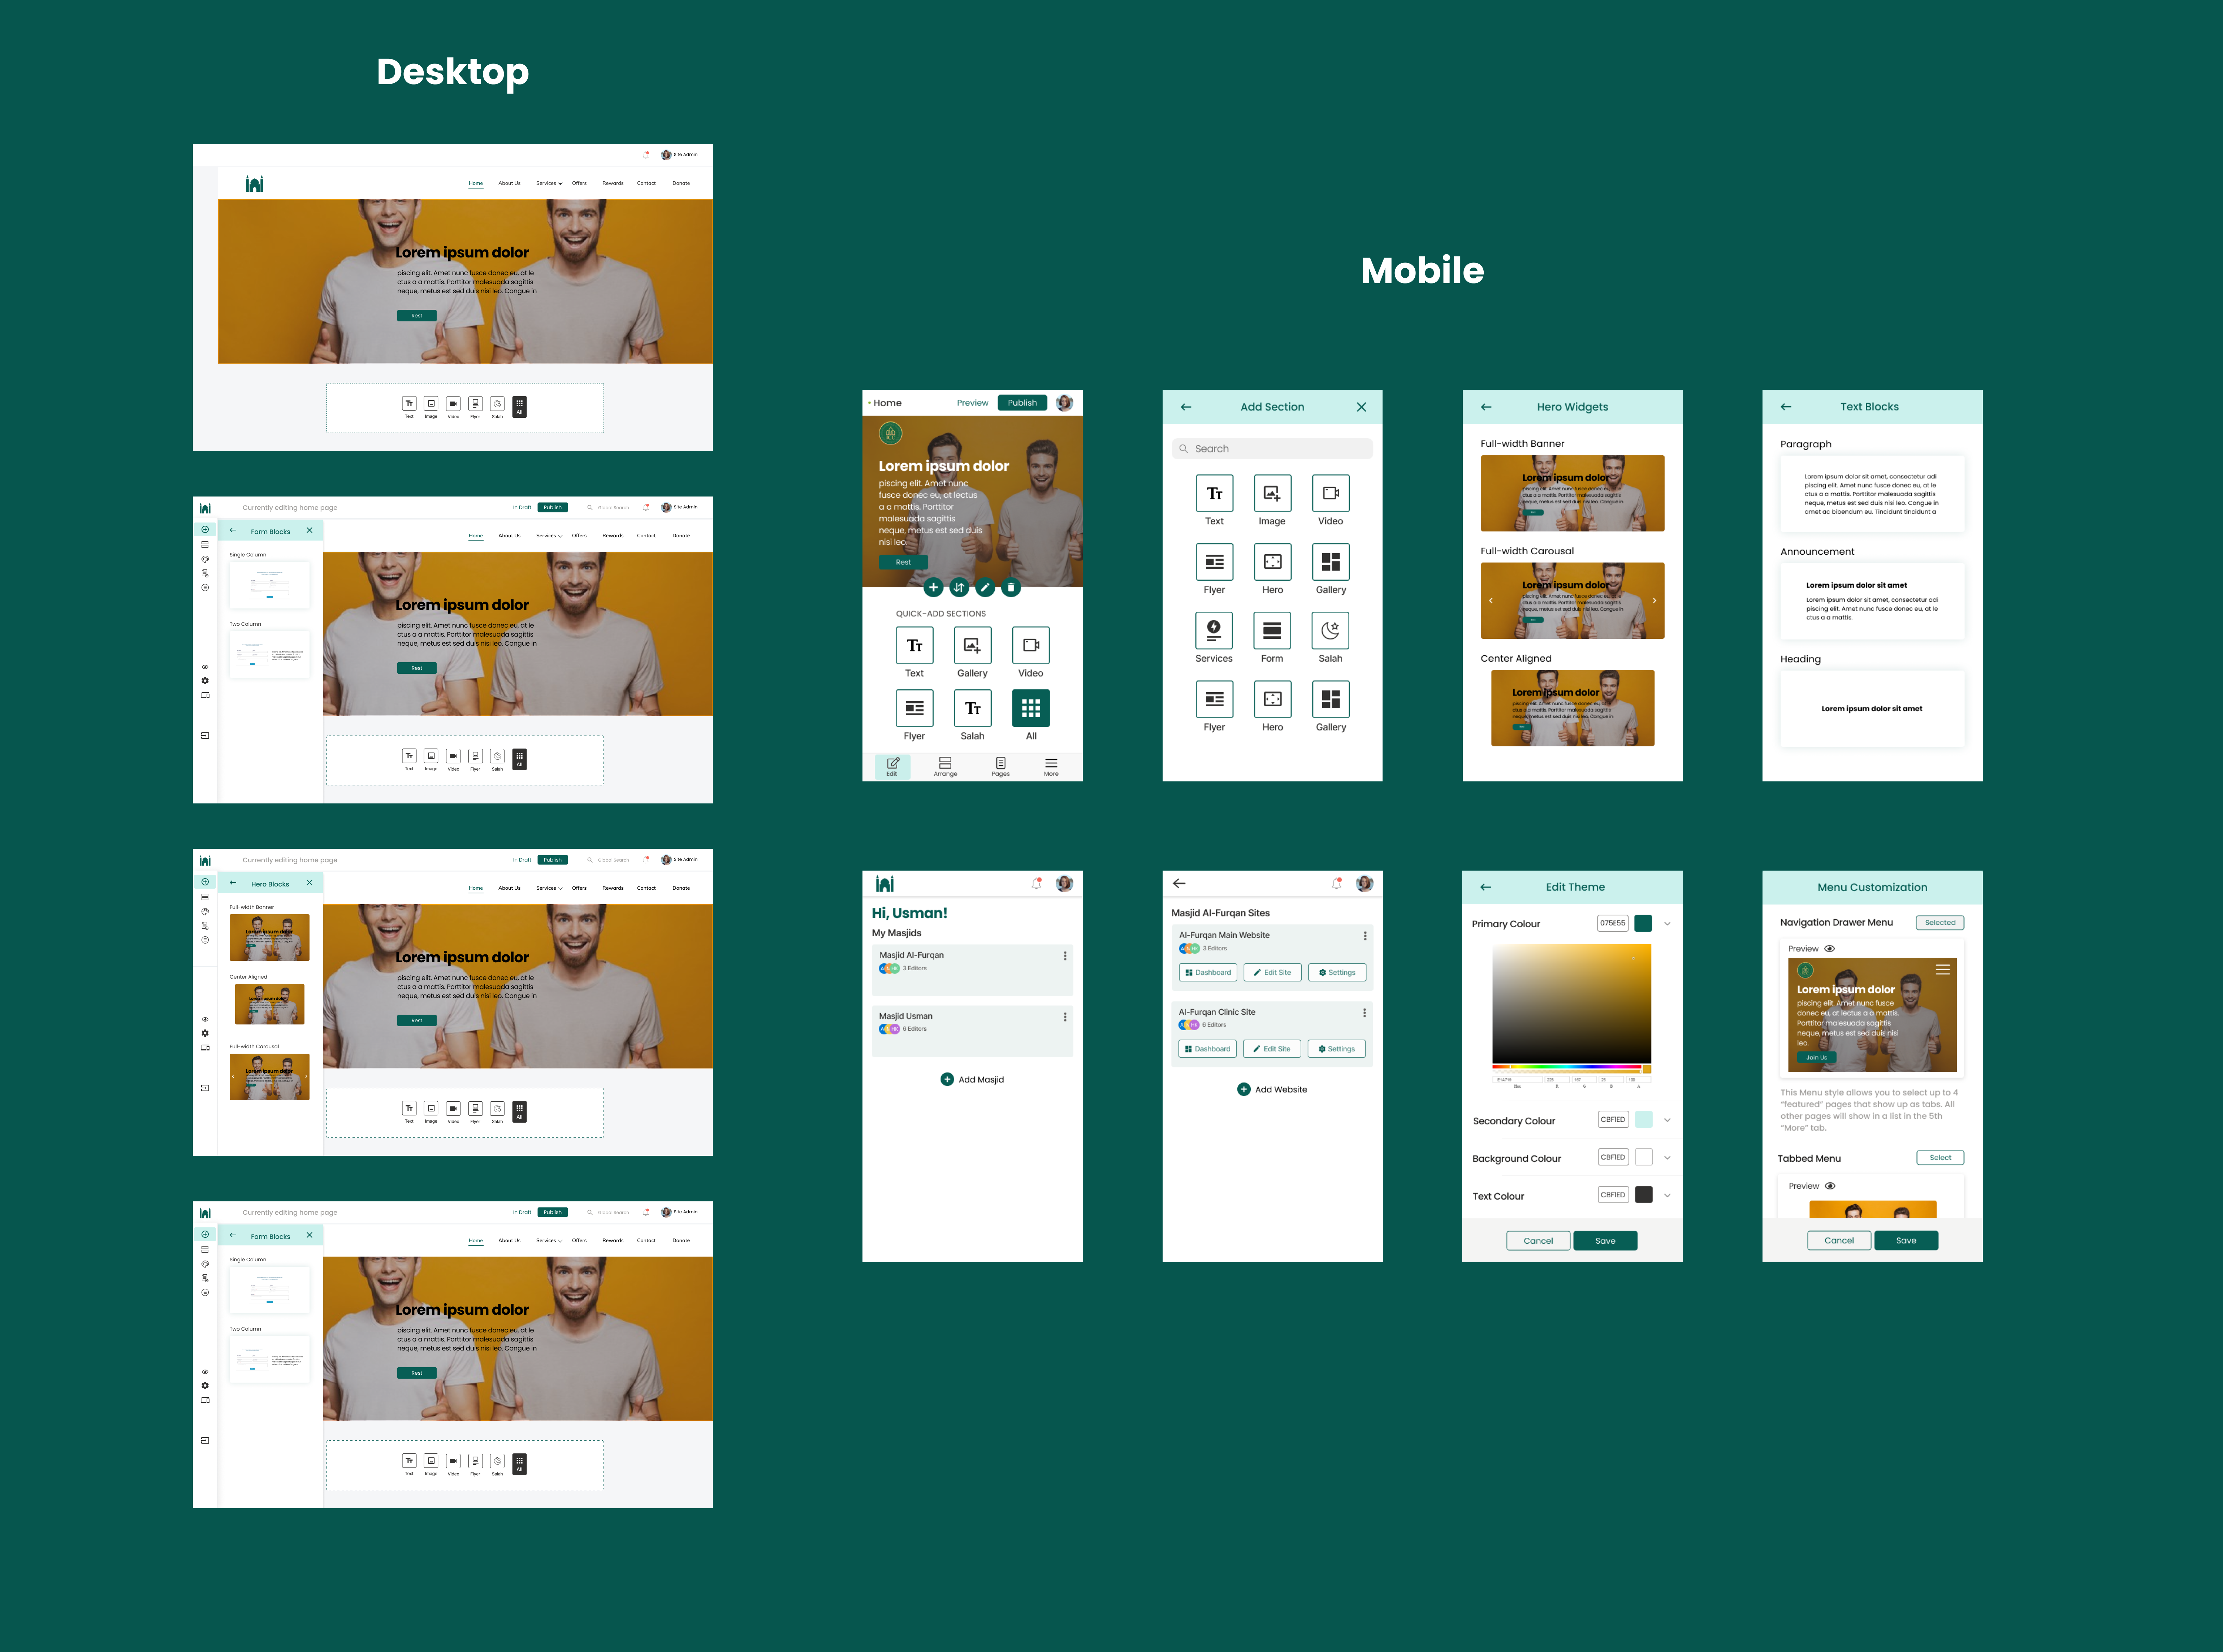 Some mobile & desktop designs that are currently being iterated on